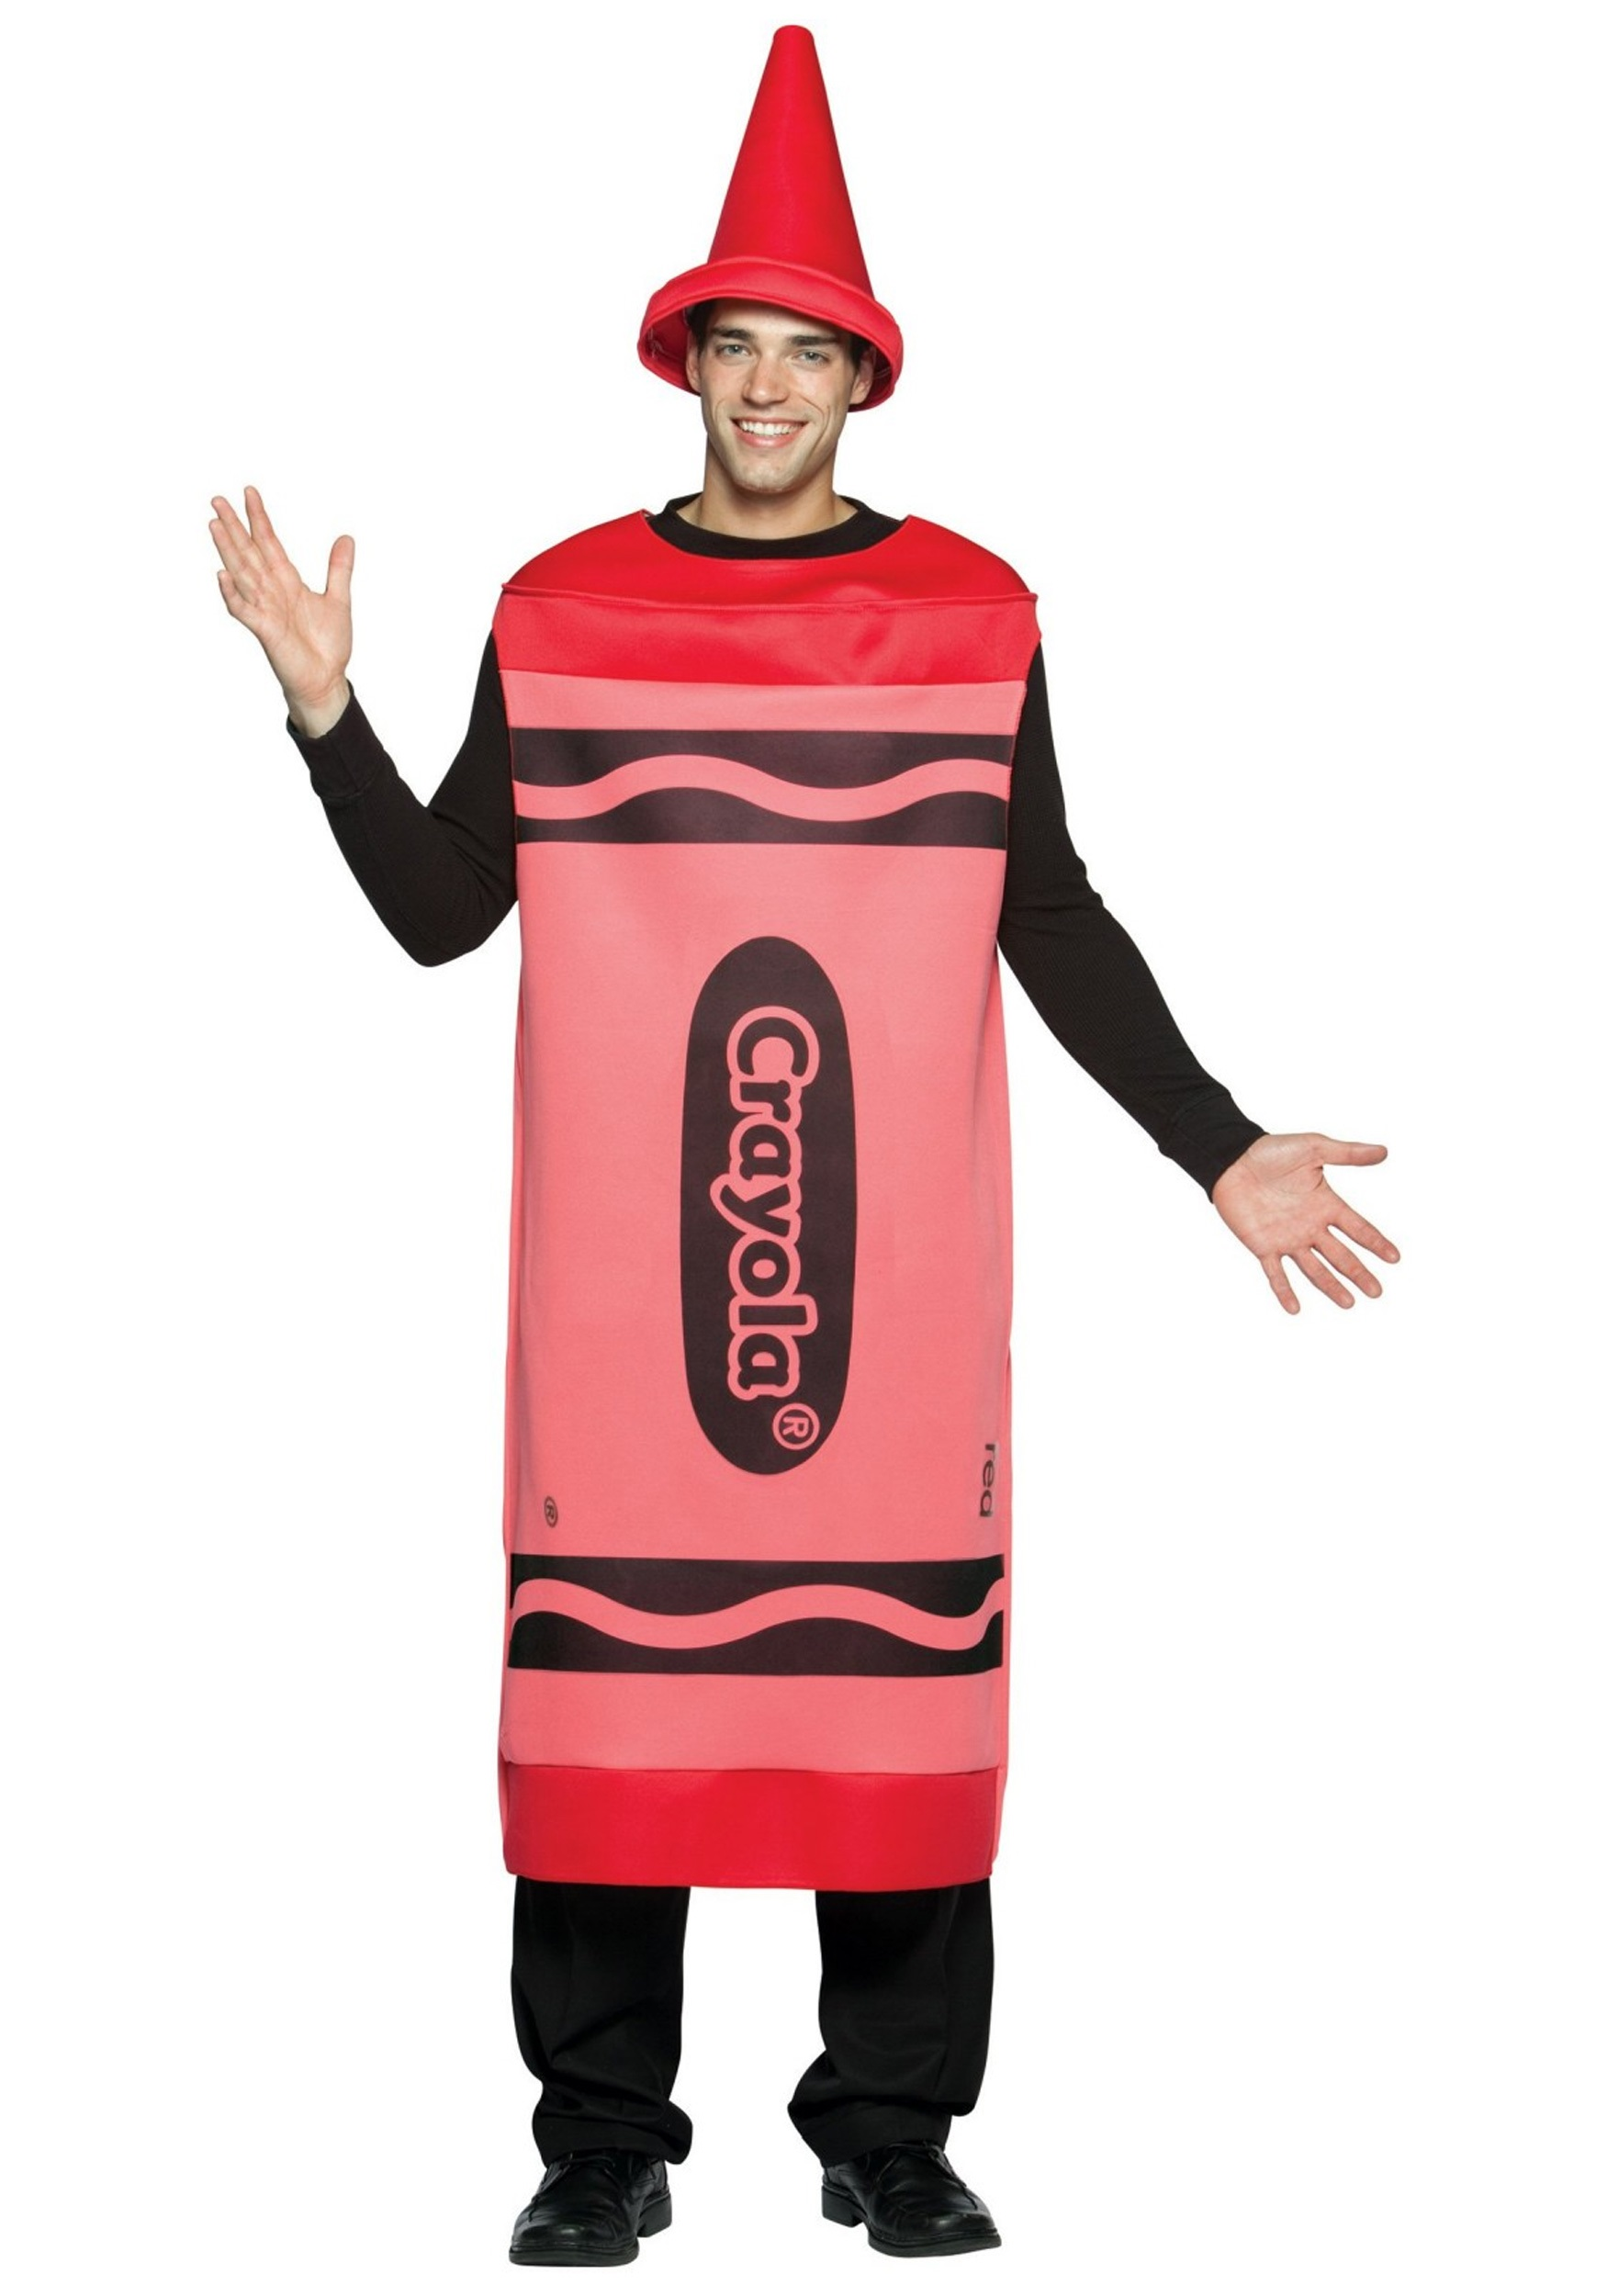 Adult Red Crayon Costume  sc 1 st  Halloween Costume Ideas & Crayon Costumes - Child and Adult Costume Ideas